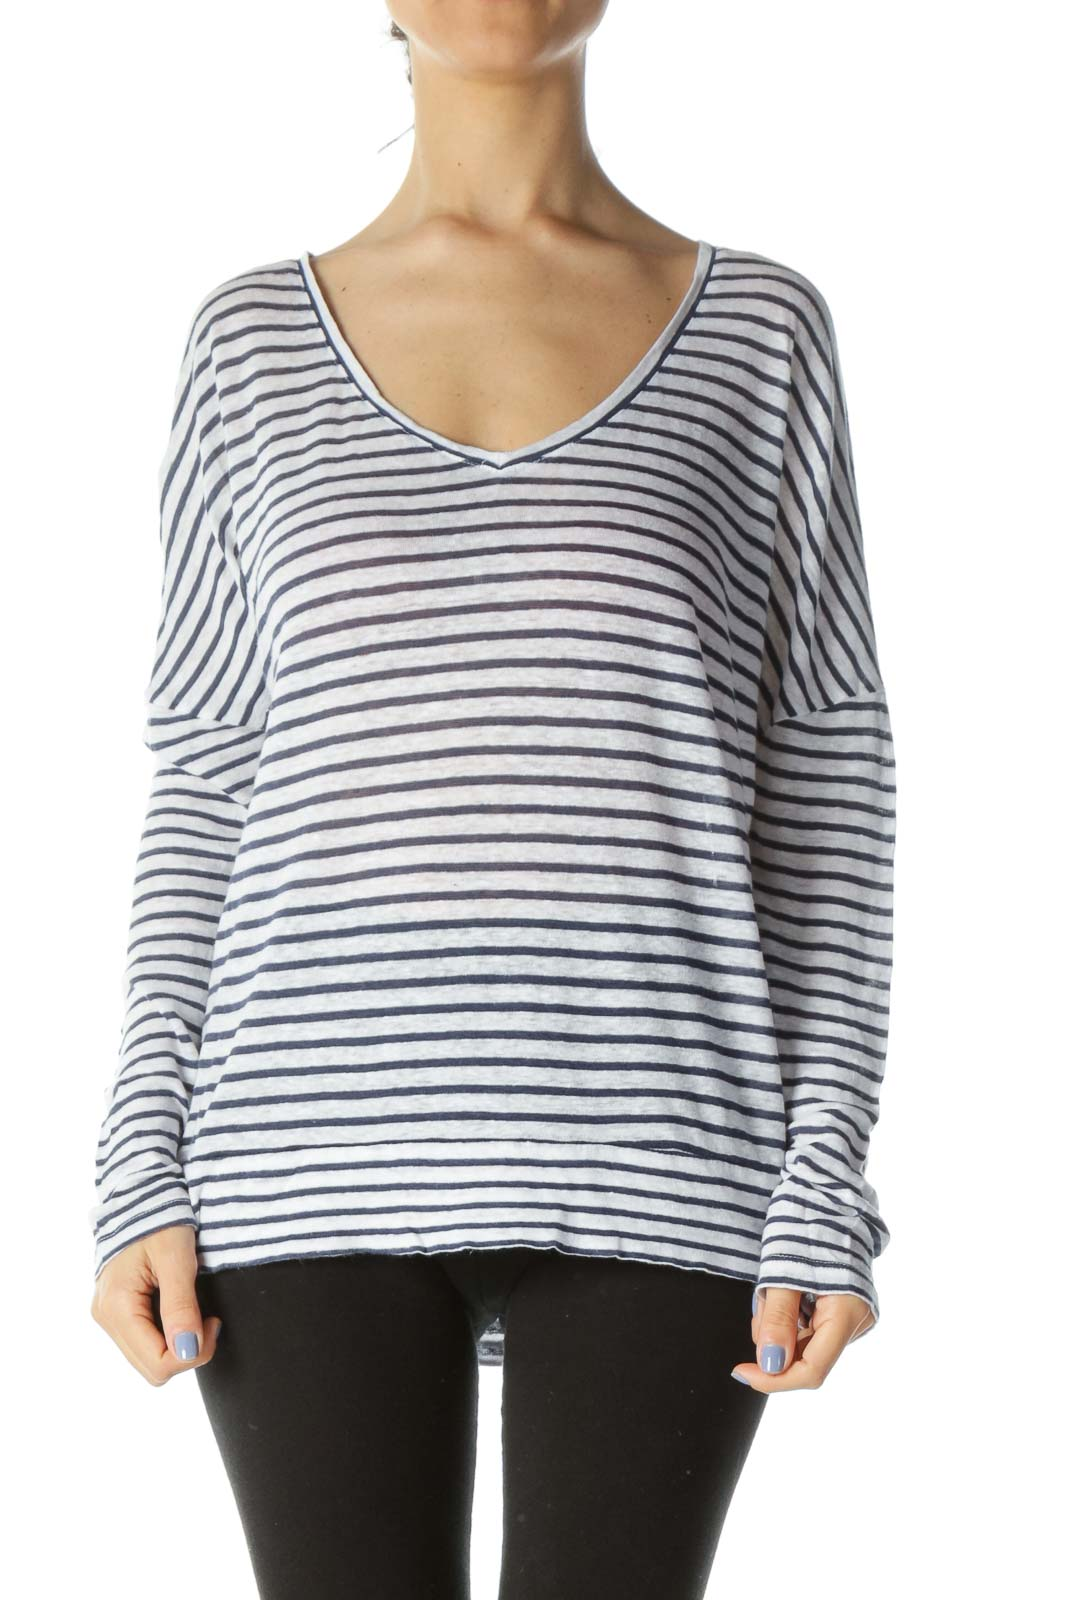 Blue/White 100% Linen V-Neck Striped Flared Knit Top Front